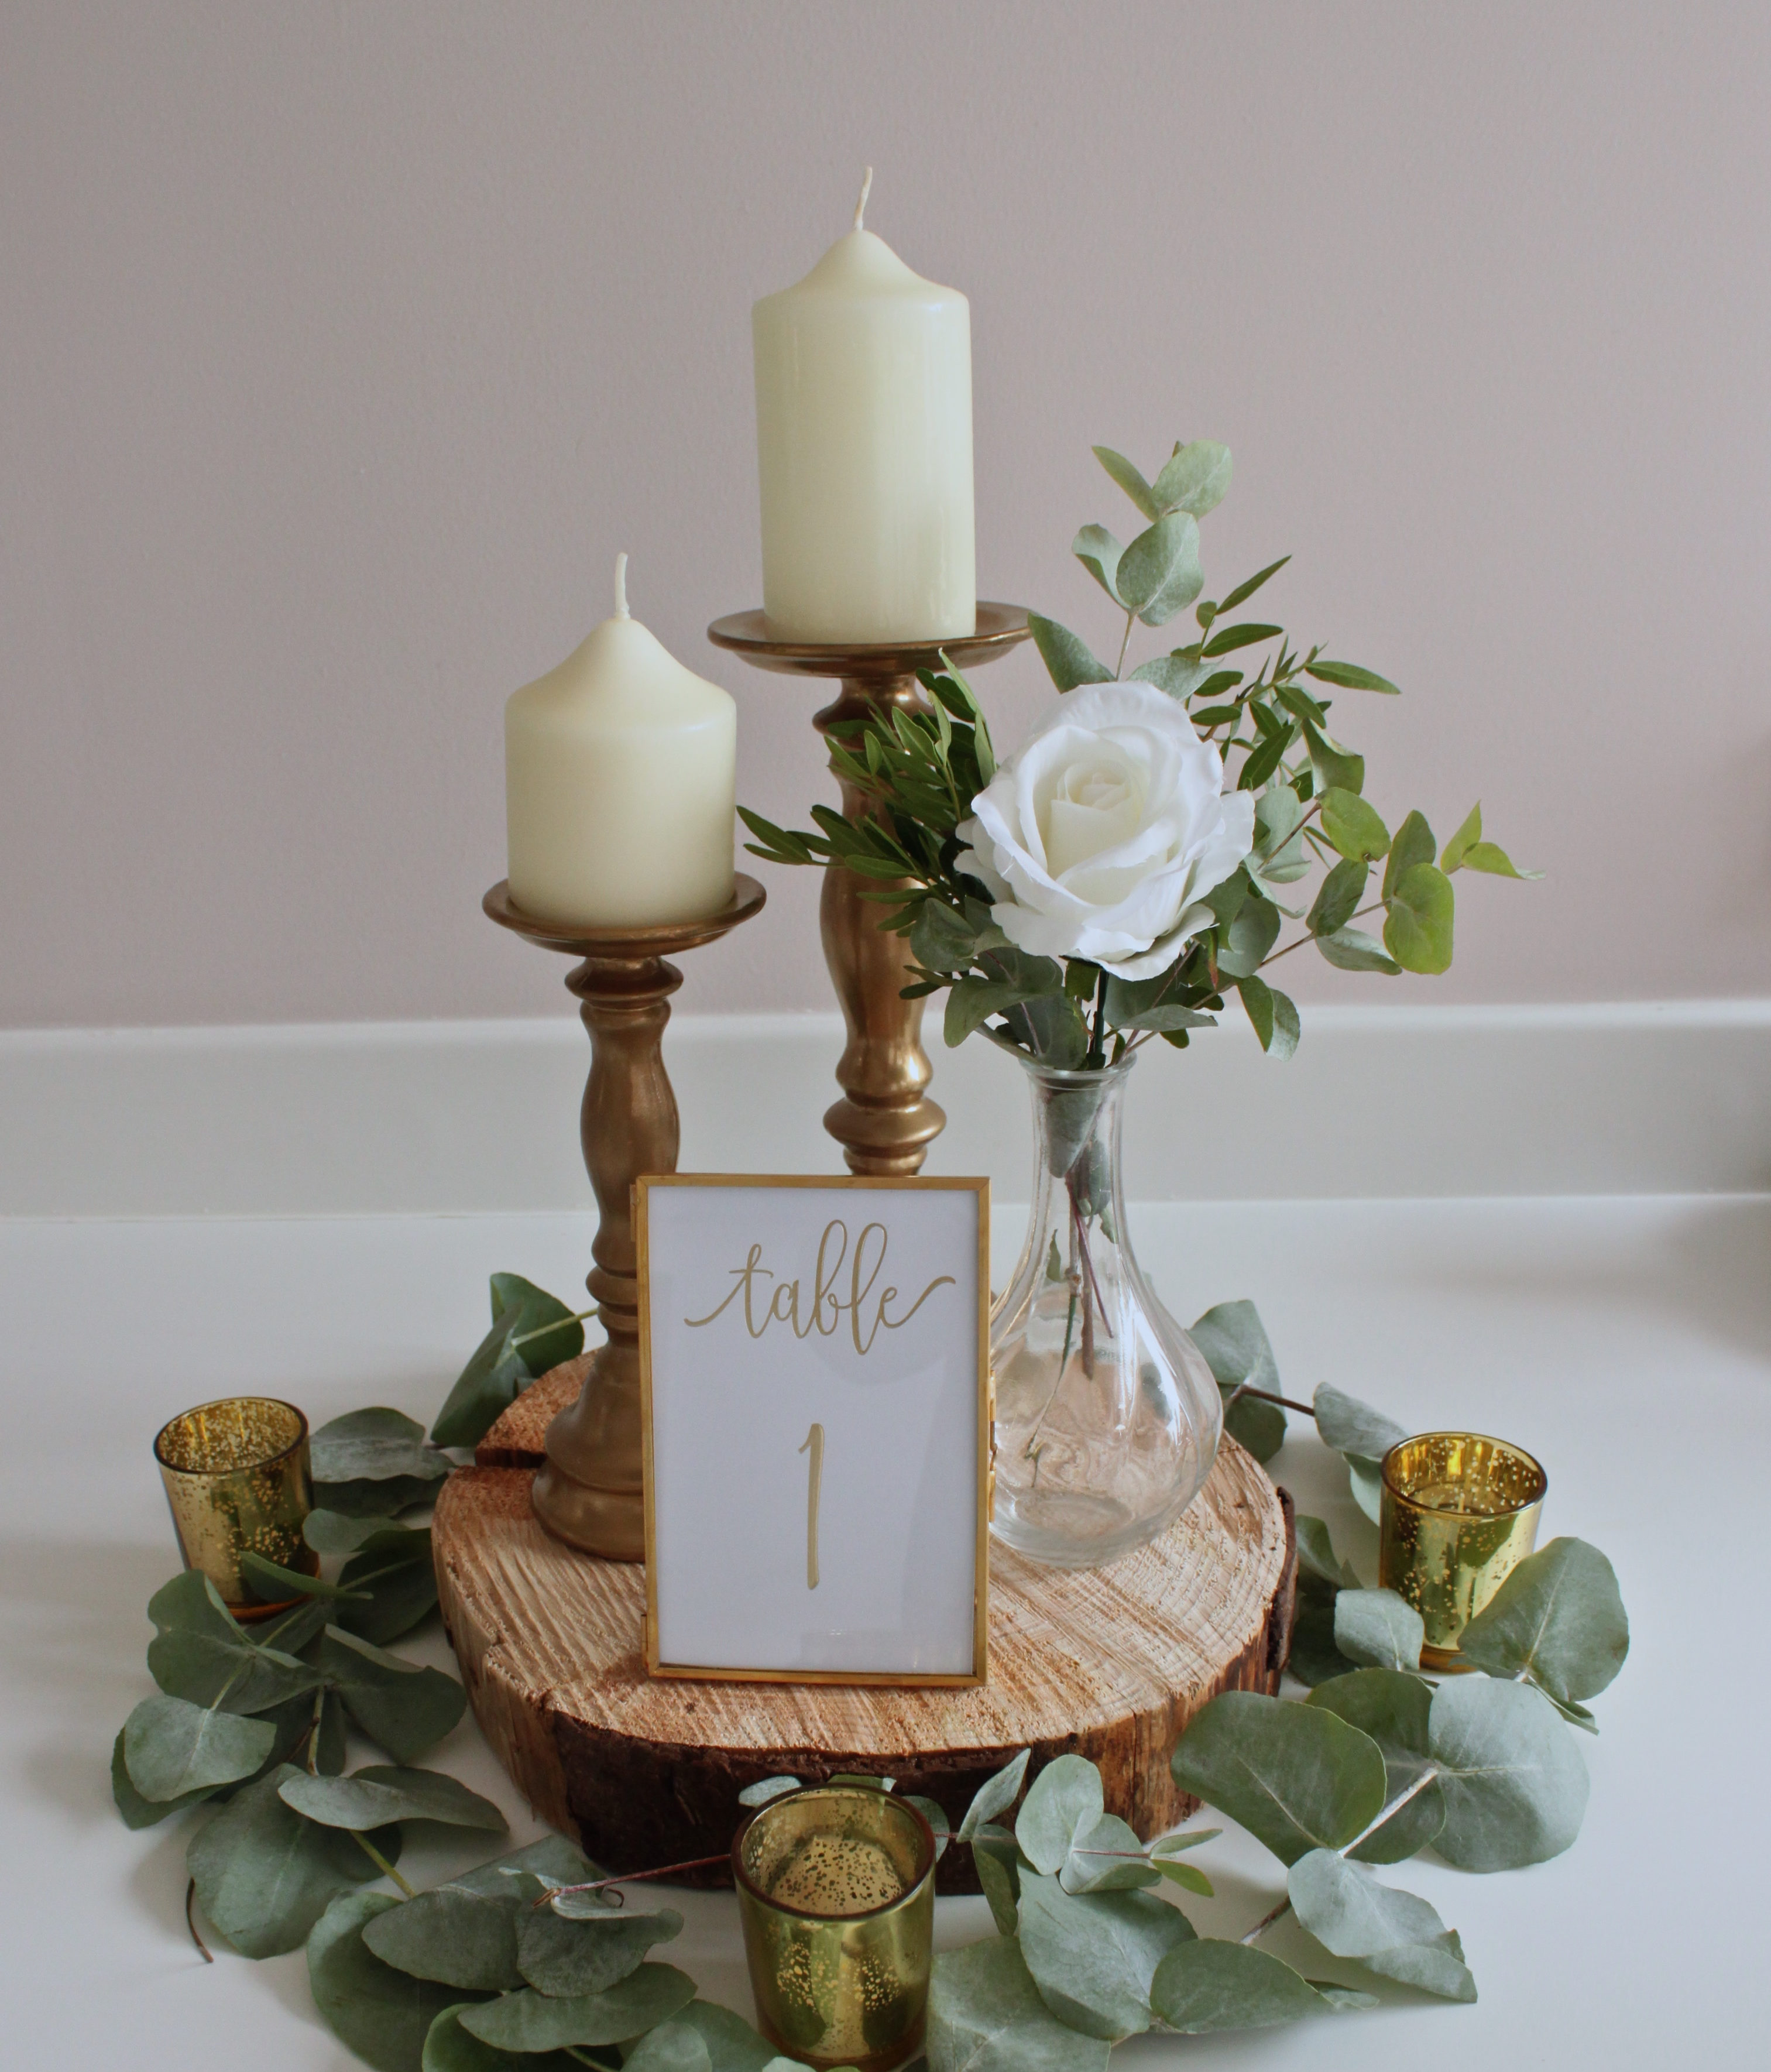 The white wedding company / wedding decor styling / candle centrepiece